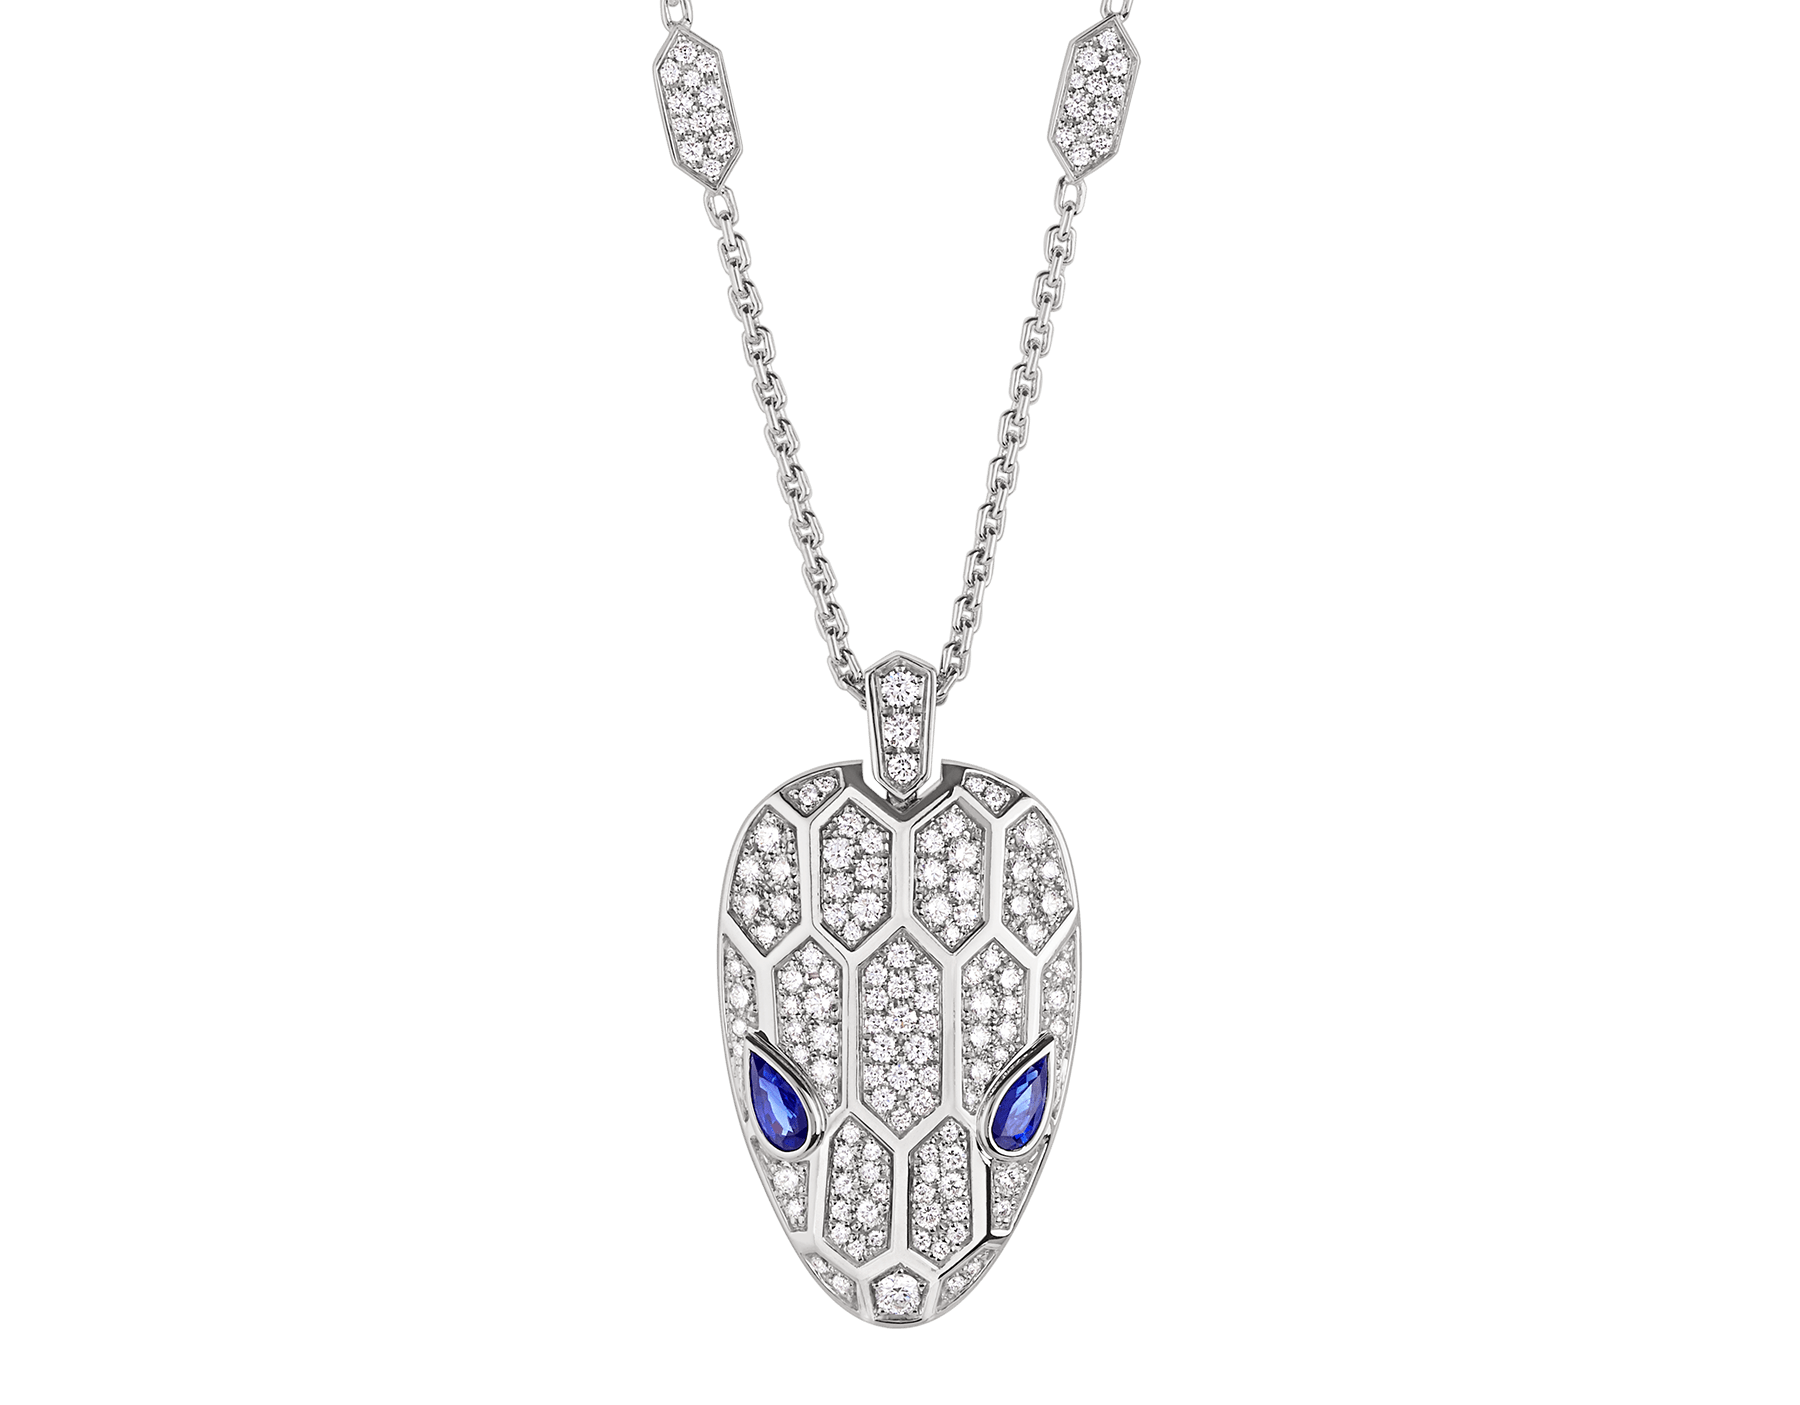 Serpenti necklace in 18 kt white gold set with blue sapphire eyes and pavé diamonds on both the chain and the pendant. 353529 image 1